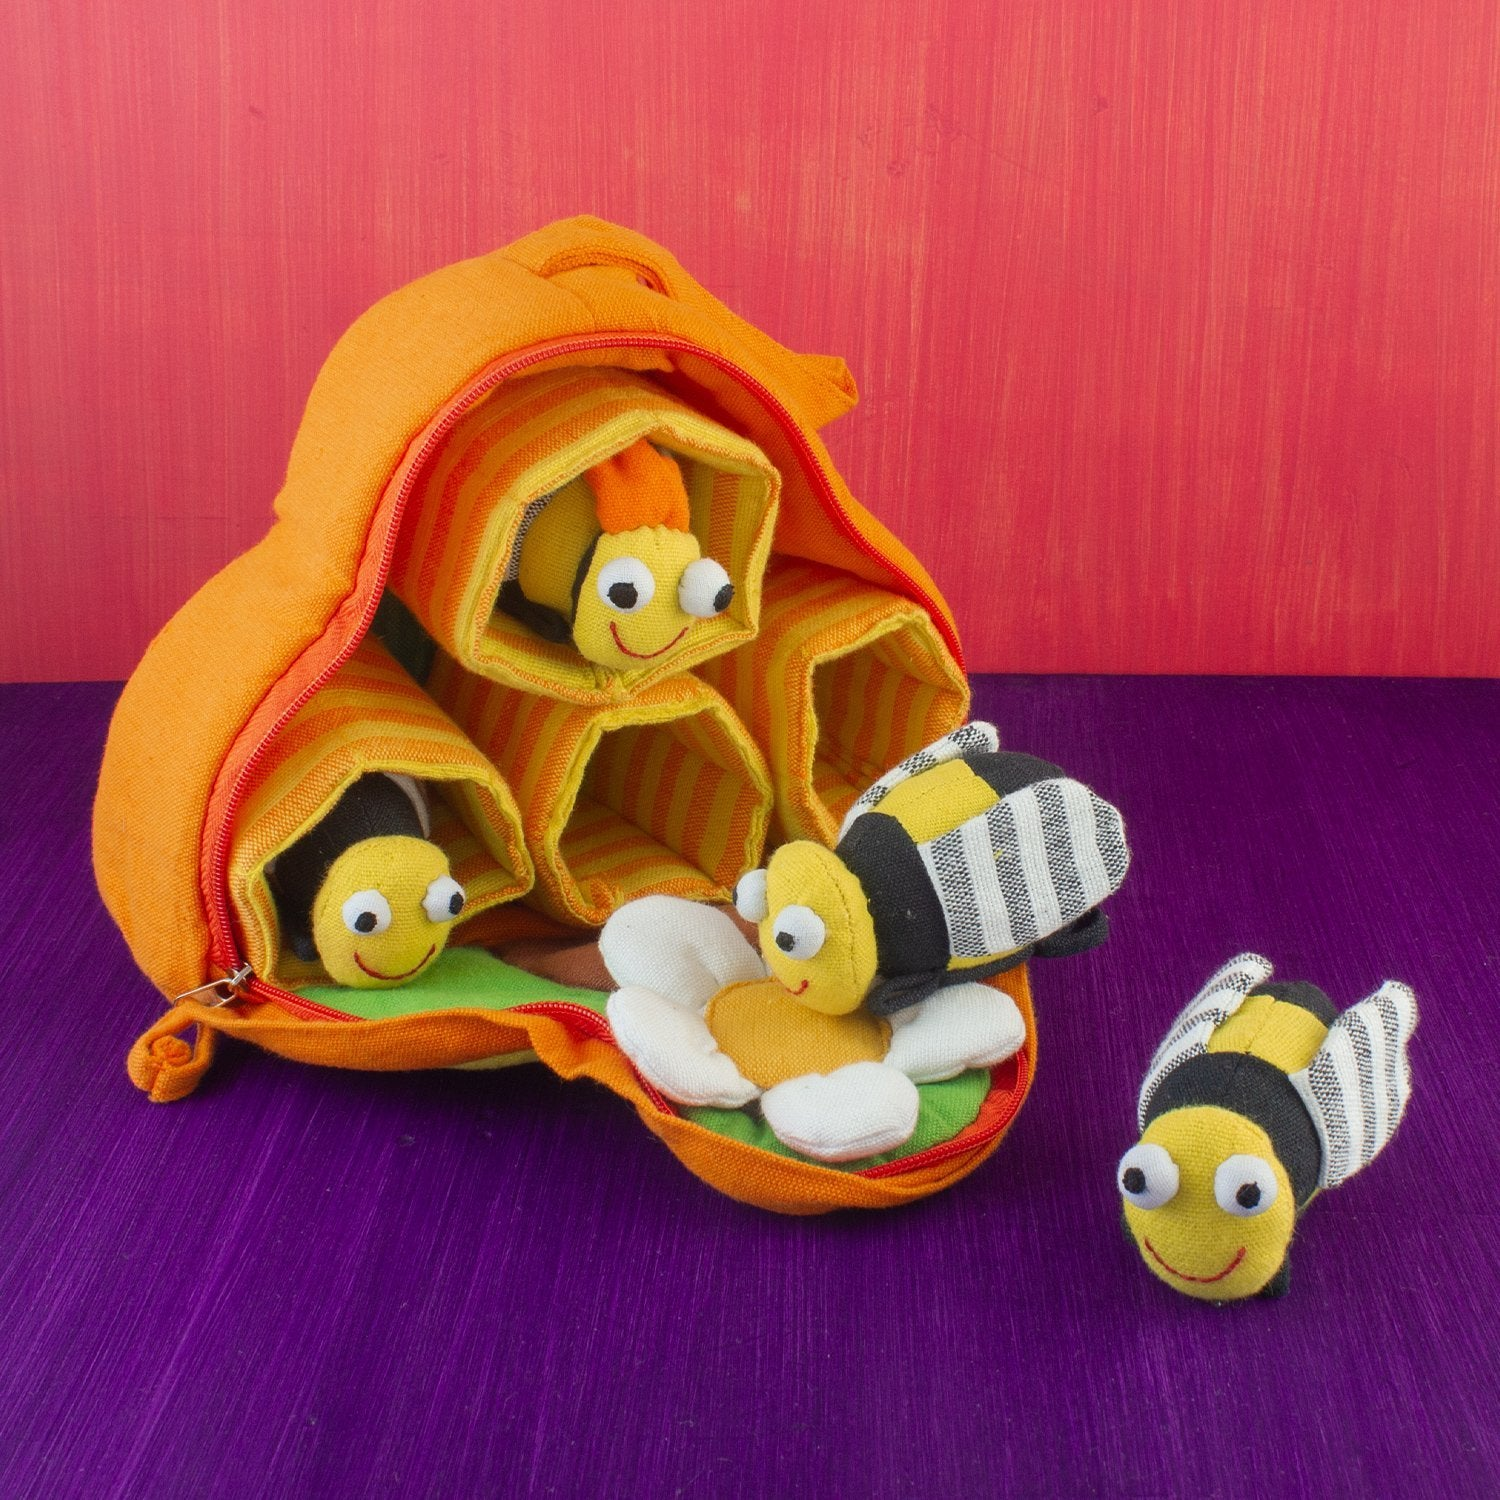 Plush toy, beehive with four toy bees and four hive spaces